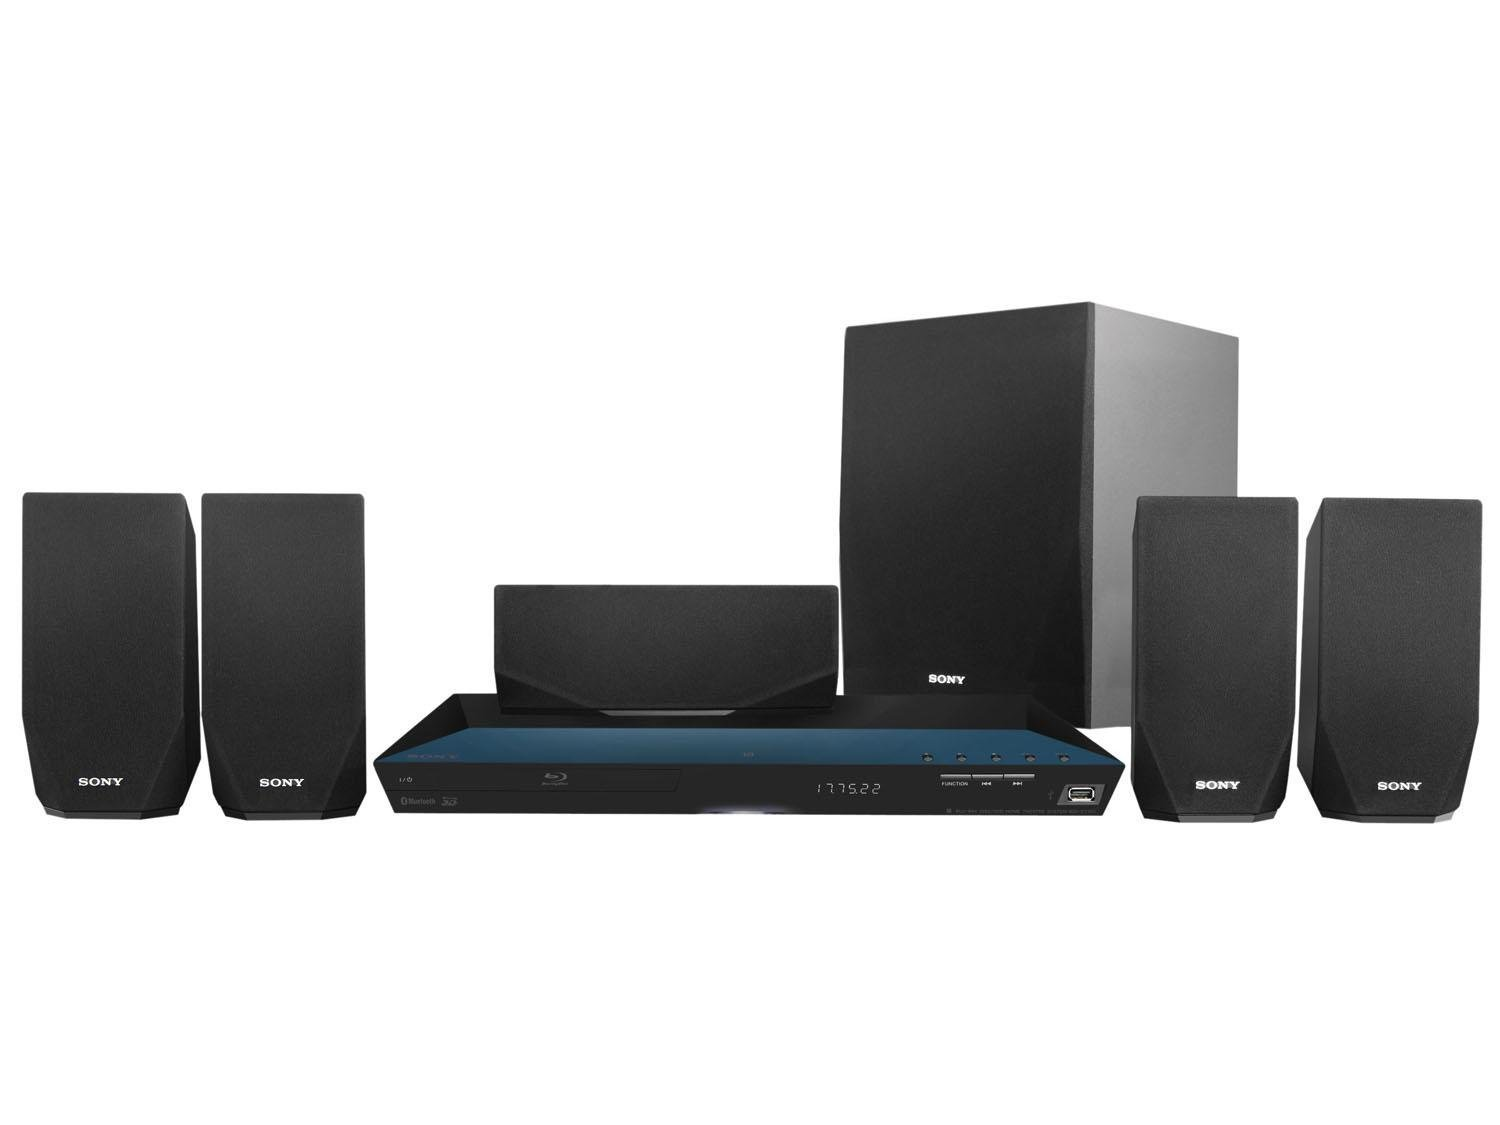 sony-bdv-e2100-3d-smart-blu-ray-home-theater-system